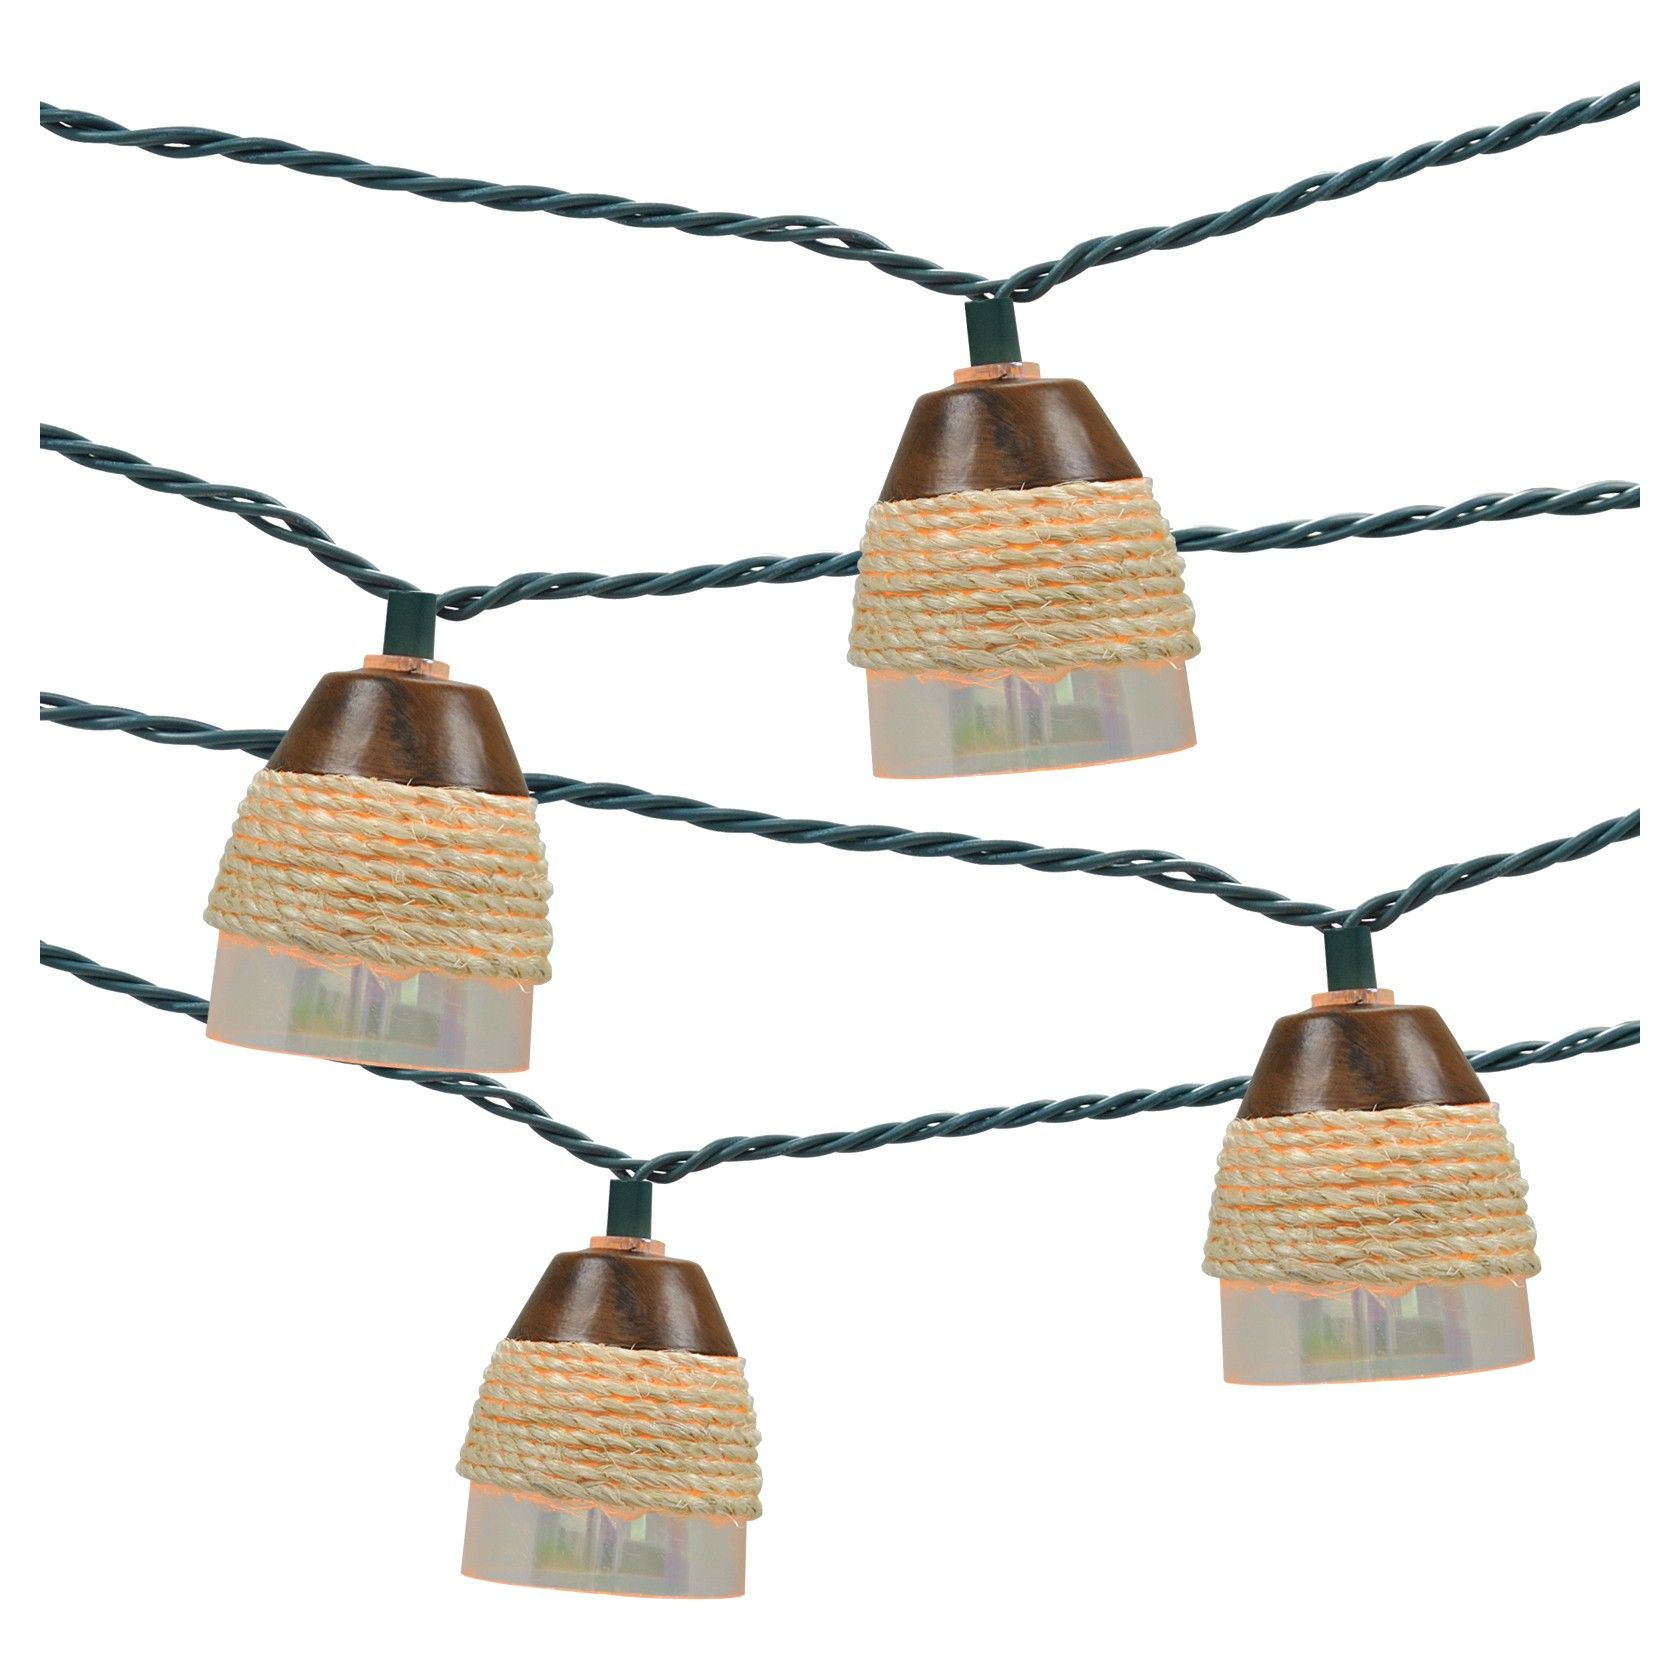 Let Your Light Shine With This Threshold Indooroutdoor String Light,